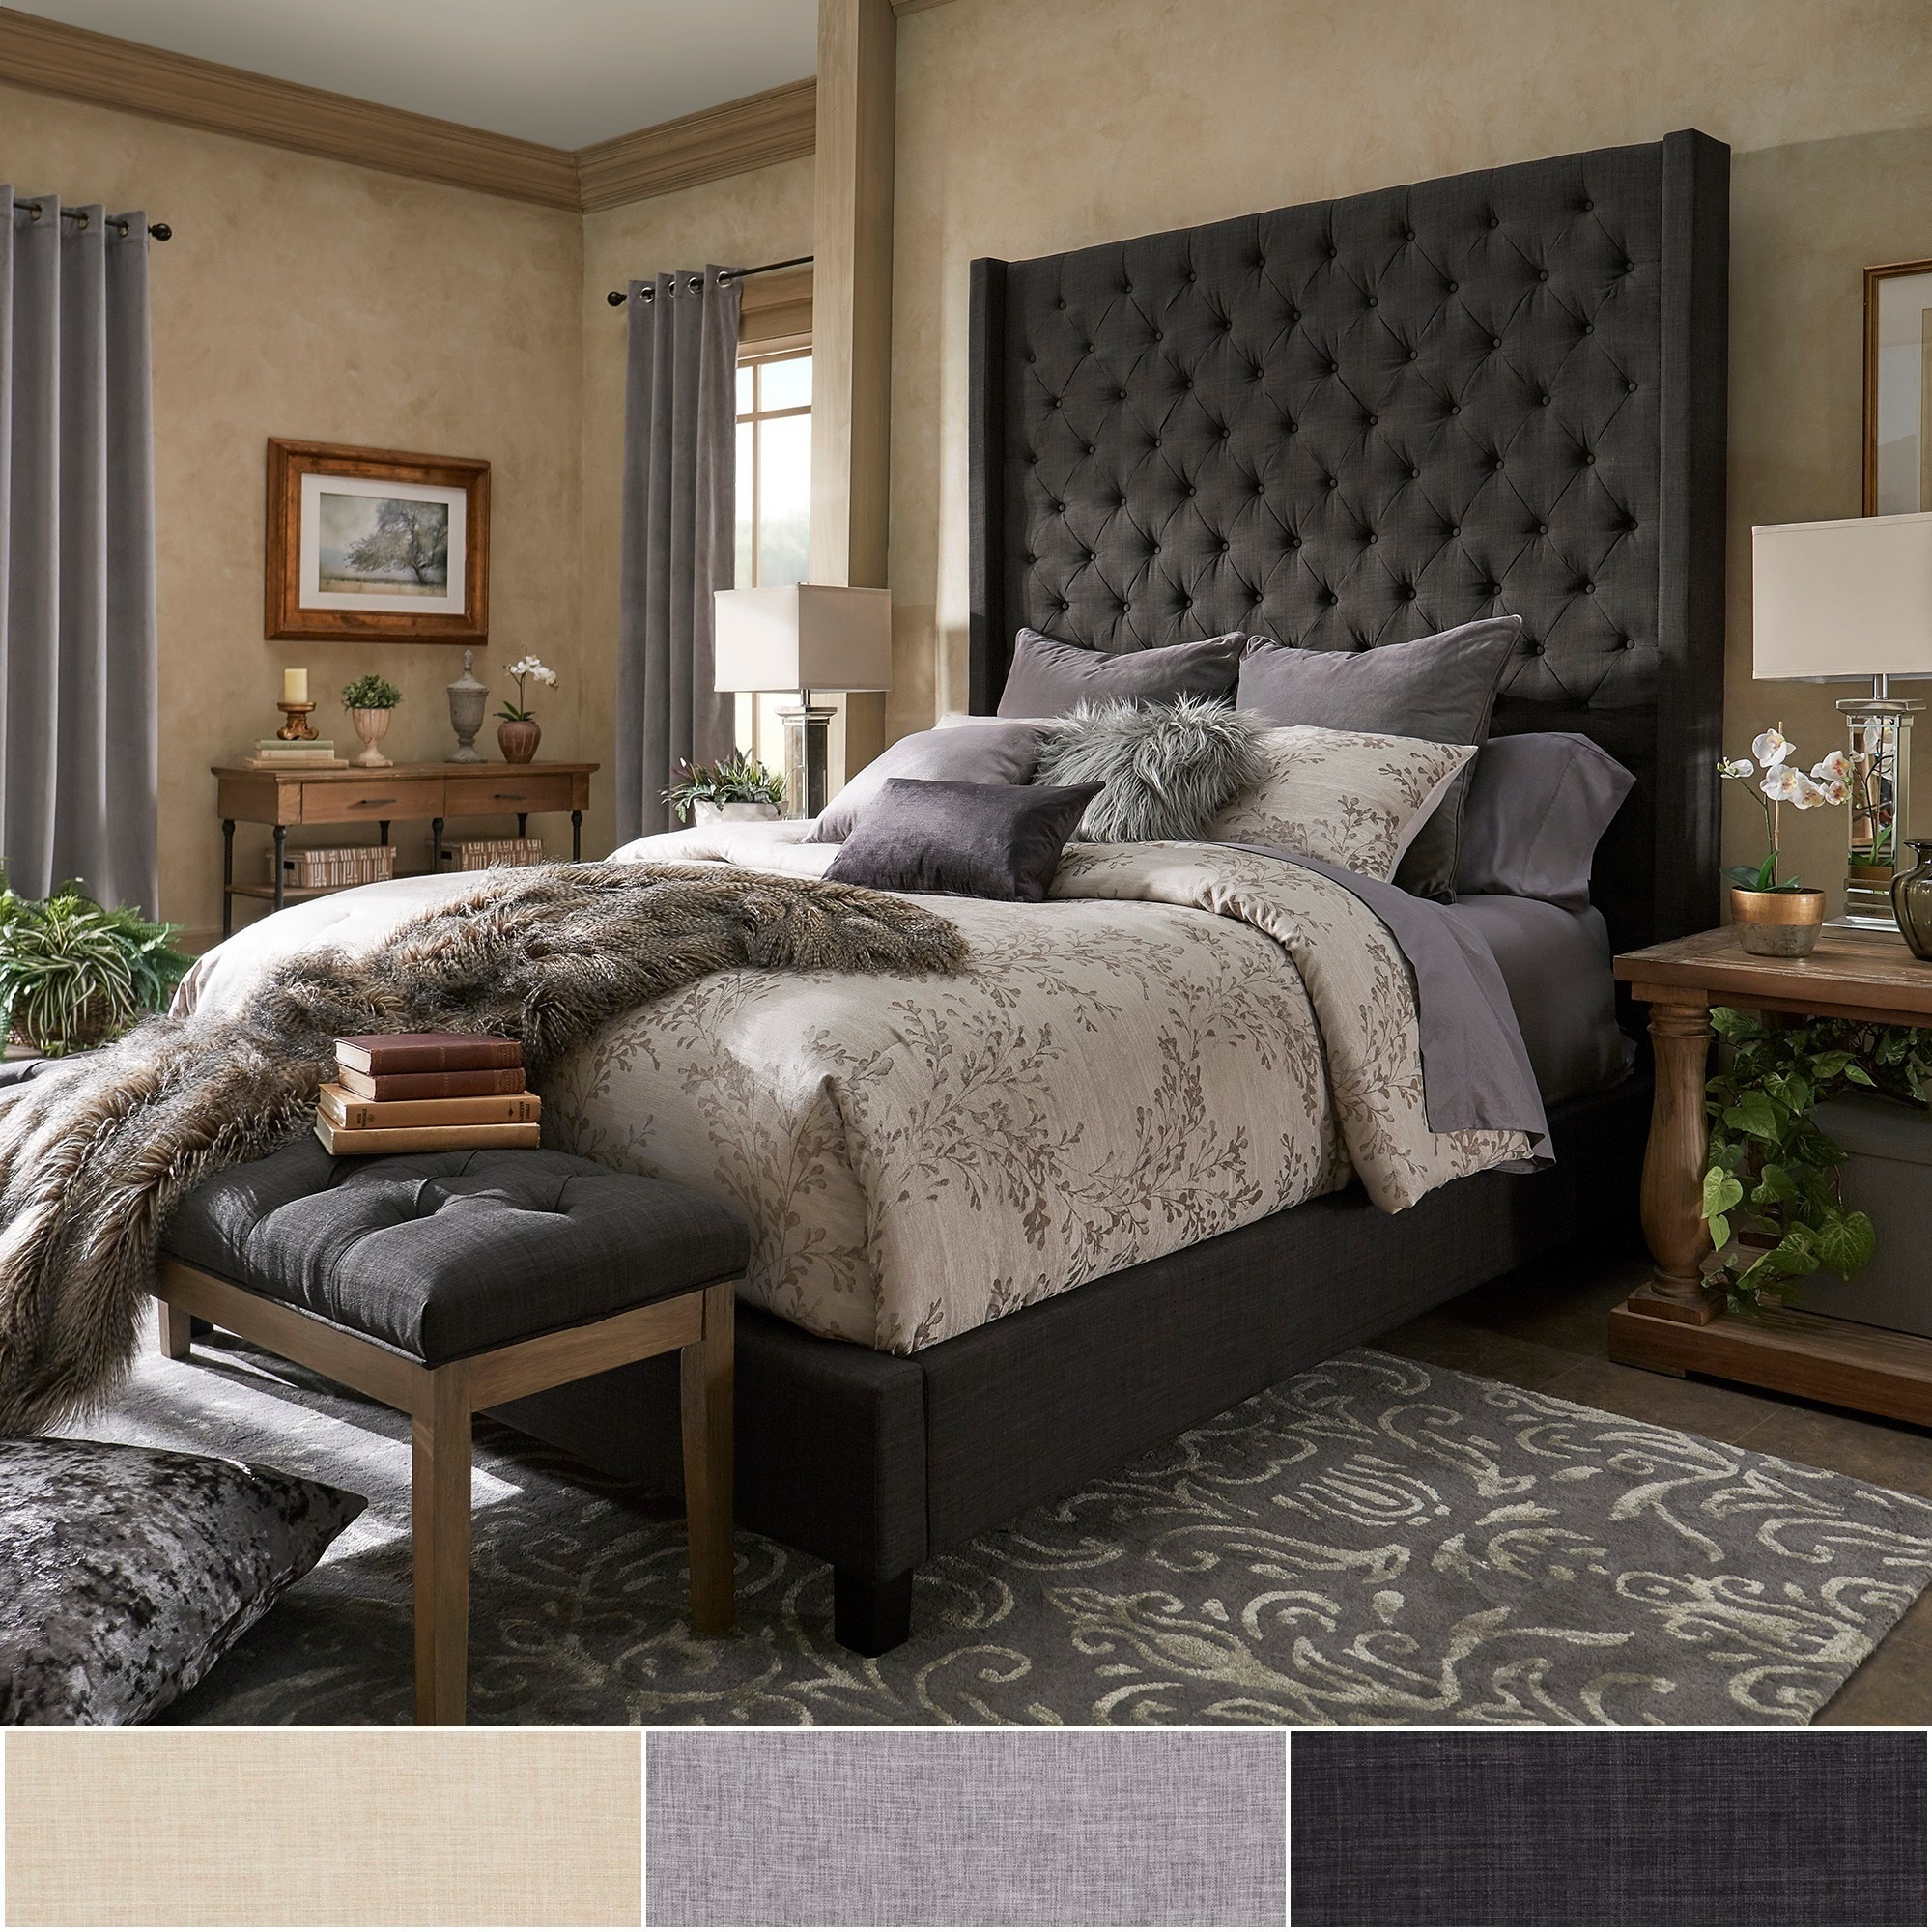 Naples Wingback Button Tufted 84 Inch High Headboard Platform Bed By Inspire Q Artisan On Sale Overstock 19511682 Beige Linen Queen